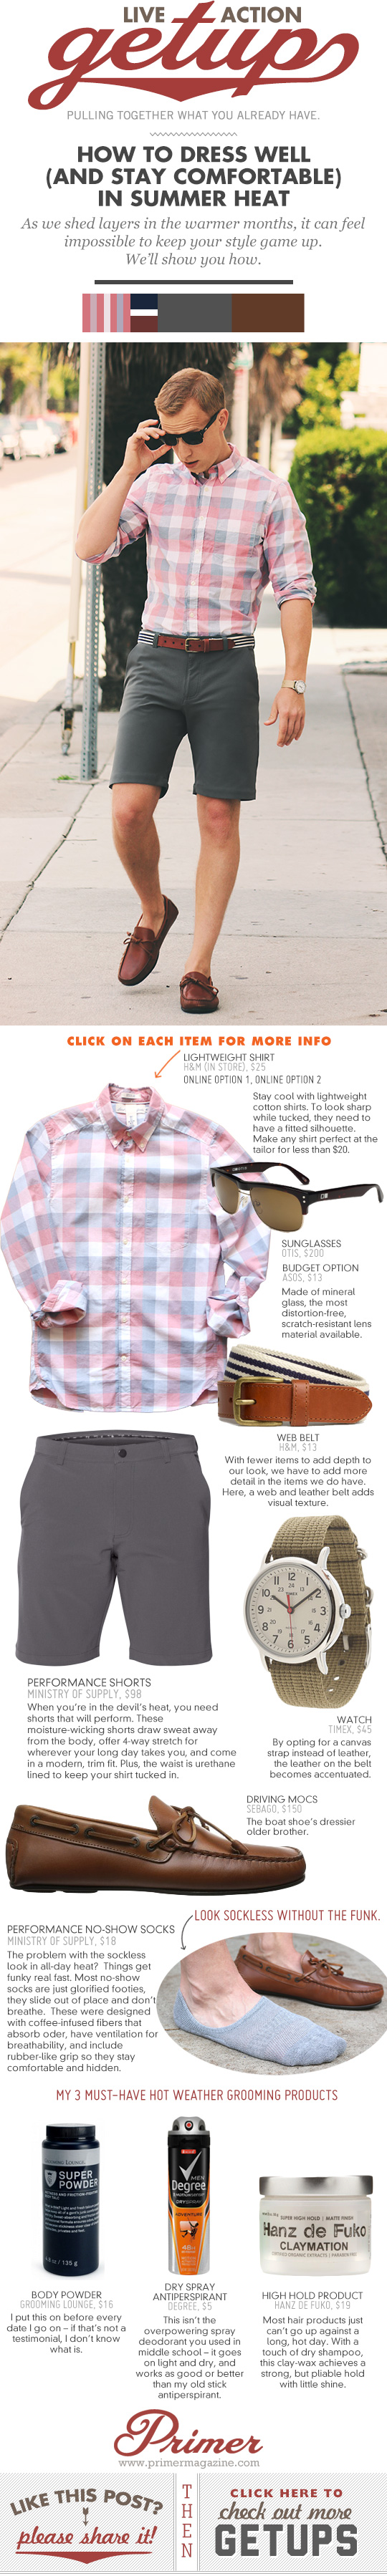 Getup - How to Dress Well in Summer - Pink check shirt, gray shorts, driving mocs